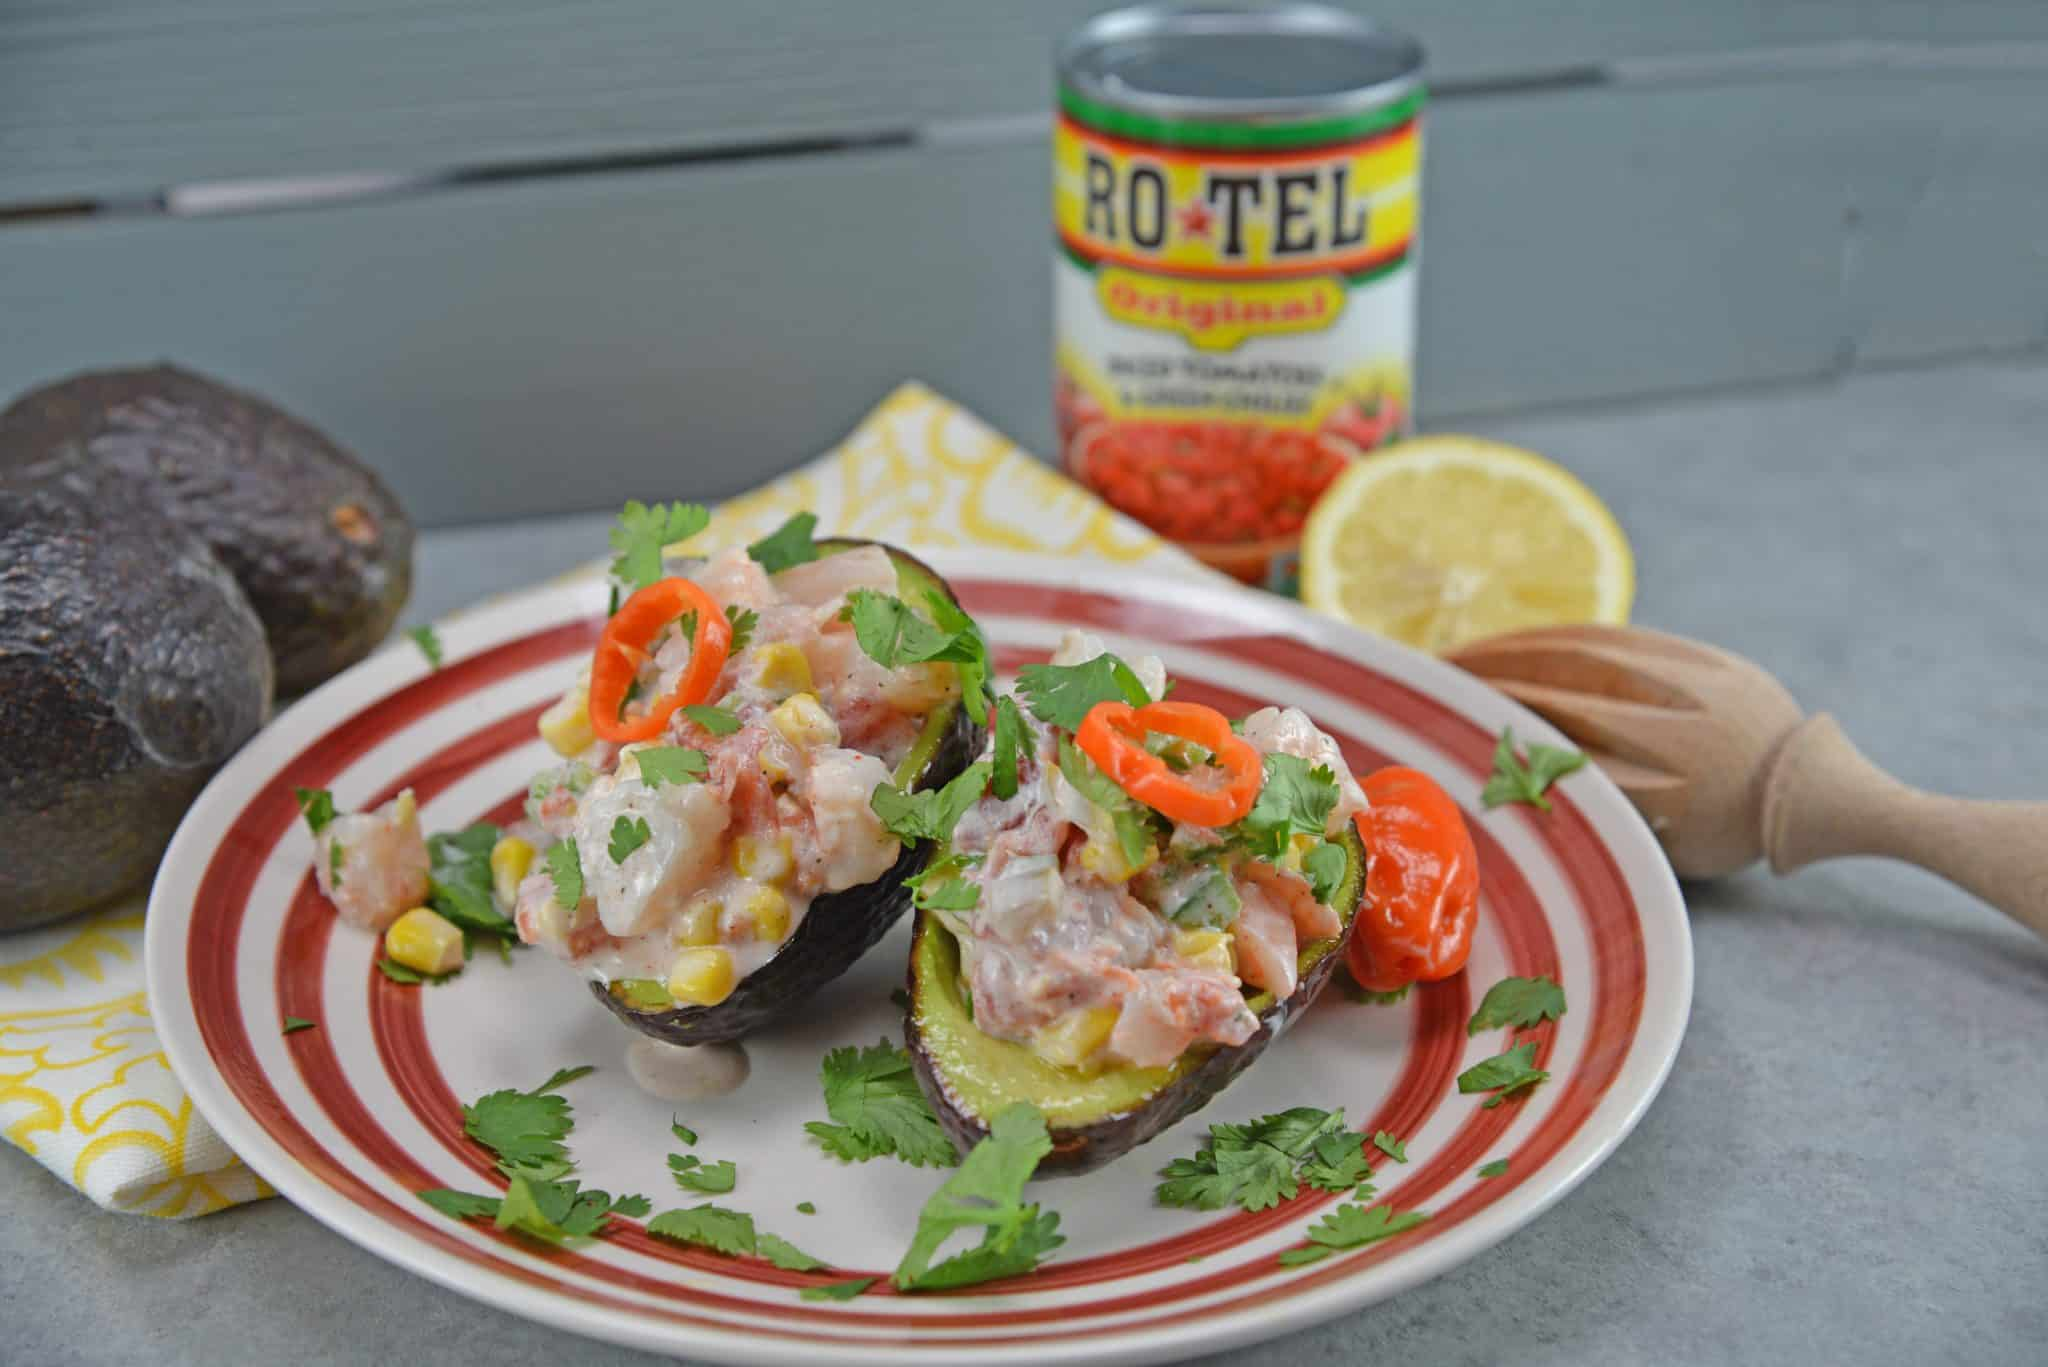 Zesty Shrimp Salad Avocados are an easy, no-cook recipe for your next BBQ. Shrimp, corn, tomatoes and bell pepper with a zesty yogurt sauce served in creamy avocado halves.